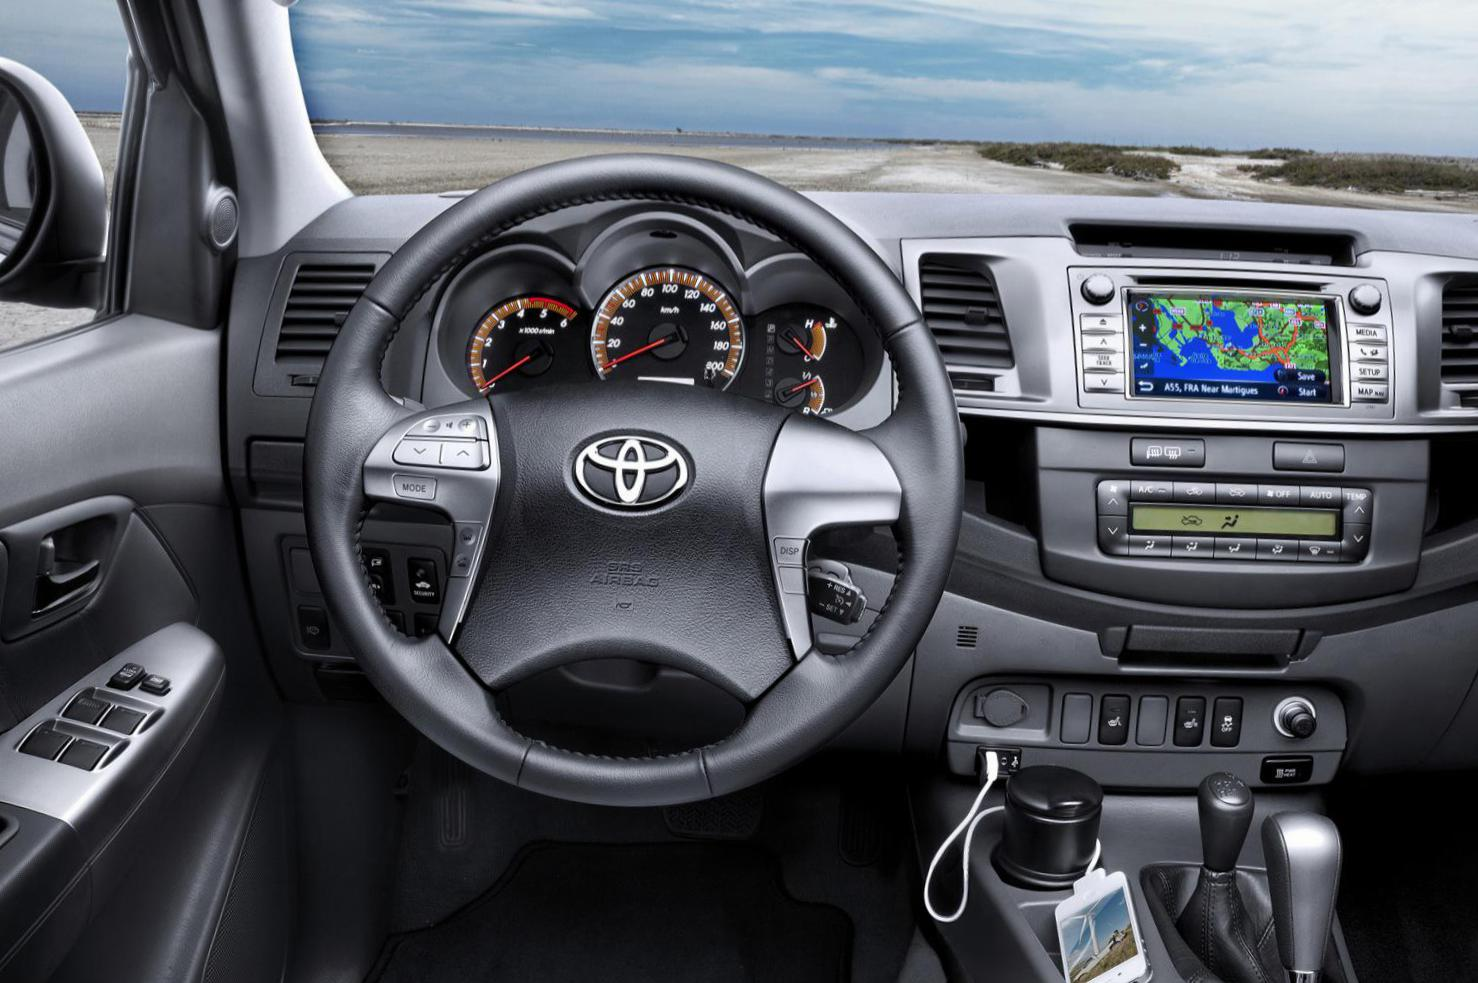 Hilux Double Cab Toyota Specification hatchback